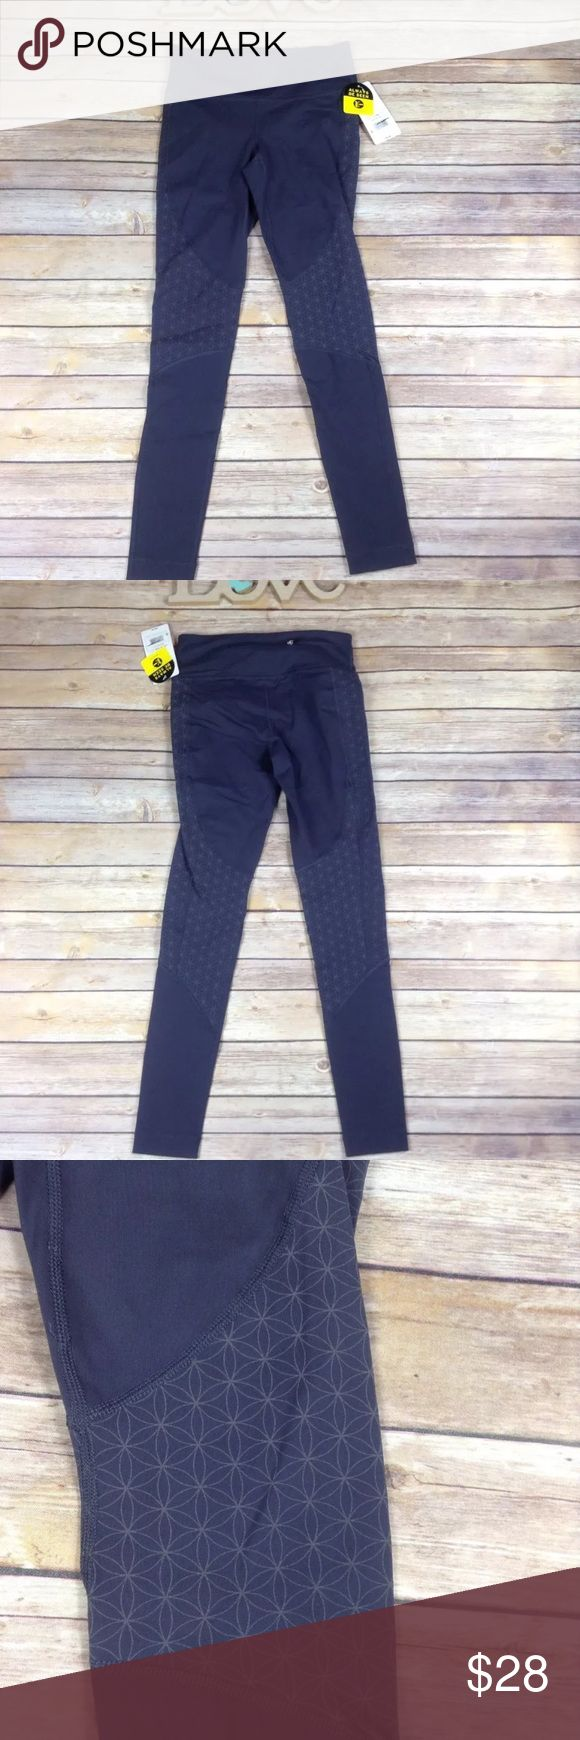 """C9 by Champion gray reflective workout leggings New with tags C9 by Champion women's size XS gray reflective workout yoga leggings. Excellent condition. No rips holes or stains. 88% nylon 12% spandex. Back zipper pocket. Retail $39.99  Measurements: Length- 33.5"""" Waist- 24""""-28"""" Inseam- 26.5""""  I ship fast! Pay before 4:30pm Monday thru Friday and I will ship the same day! Thank you for looking! Check out my other items! C9 Pants Leggings"""